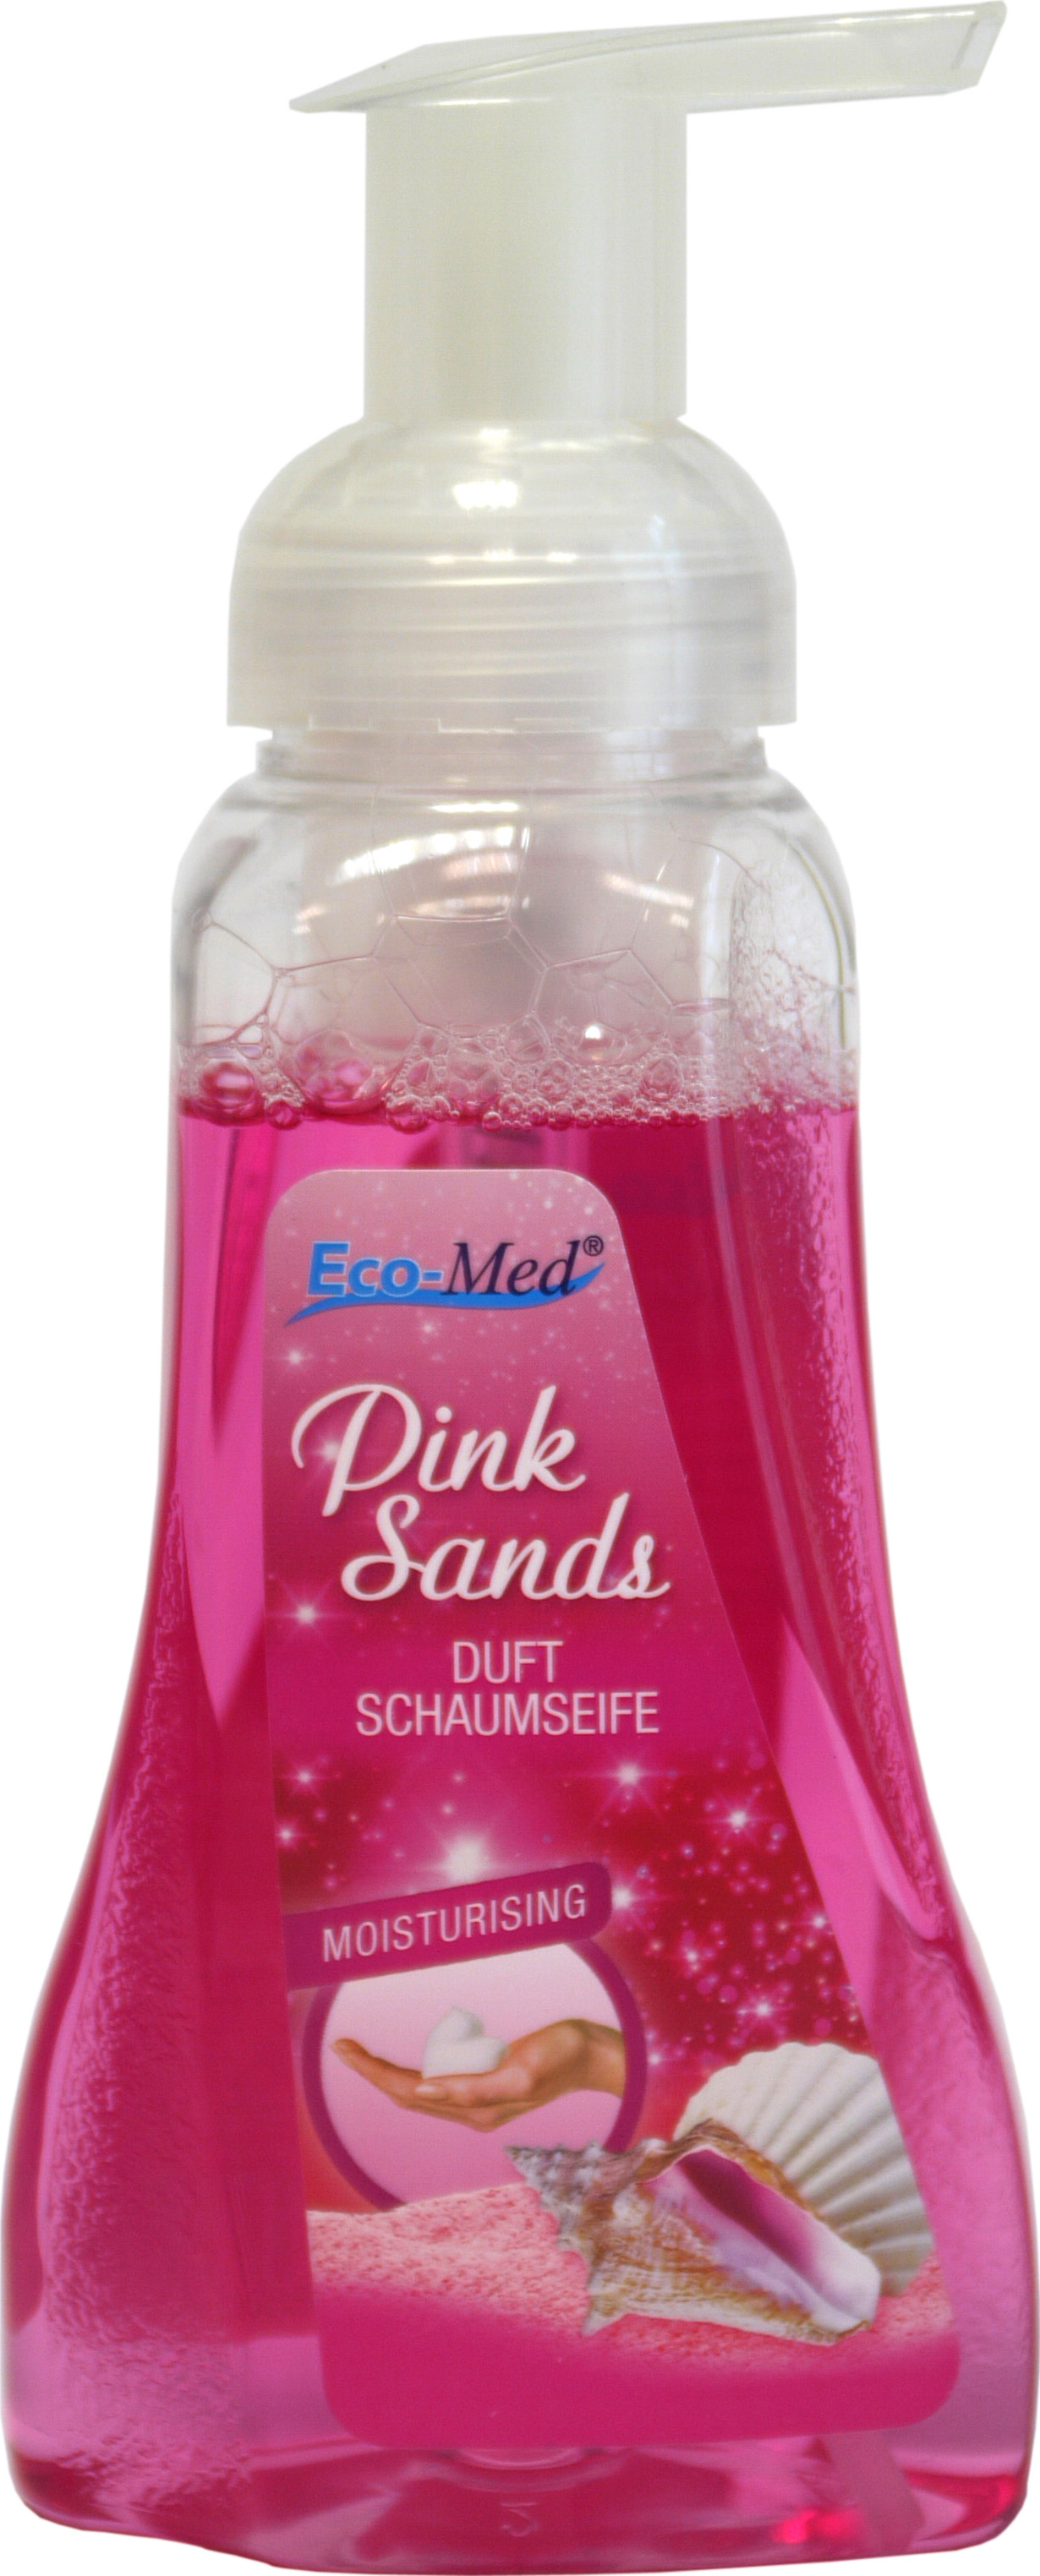 01611 - foam soap pink sands 300 ml